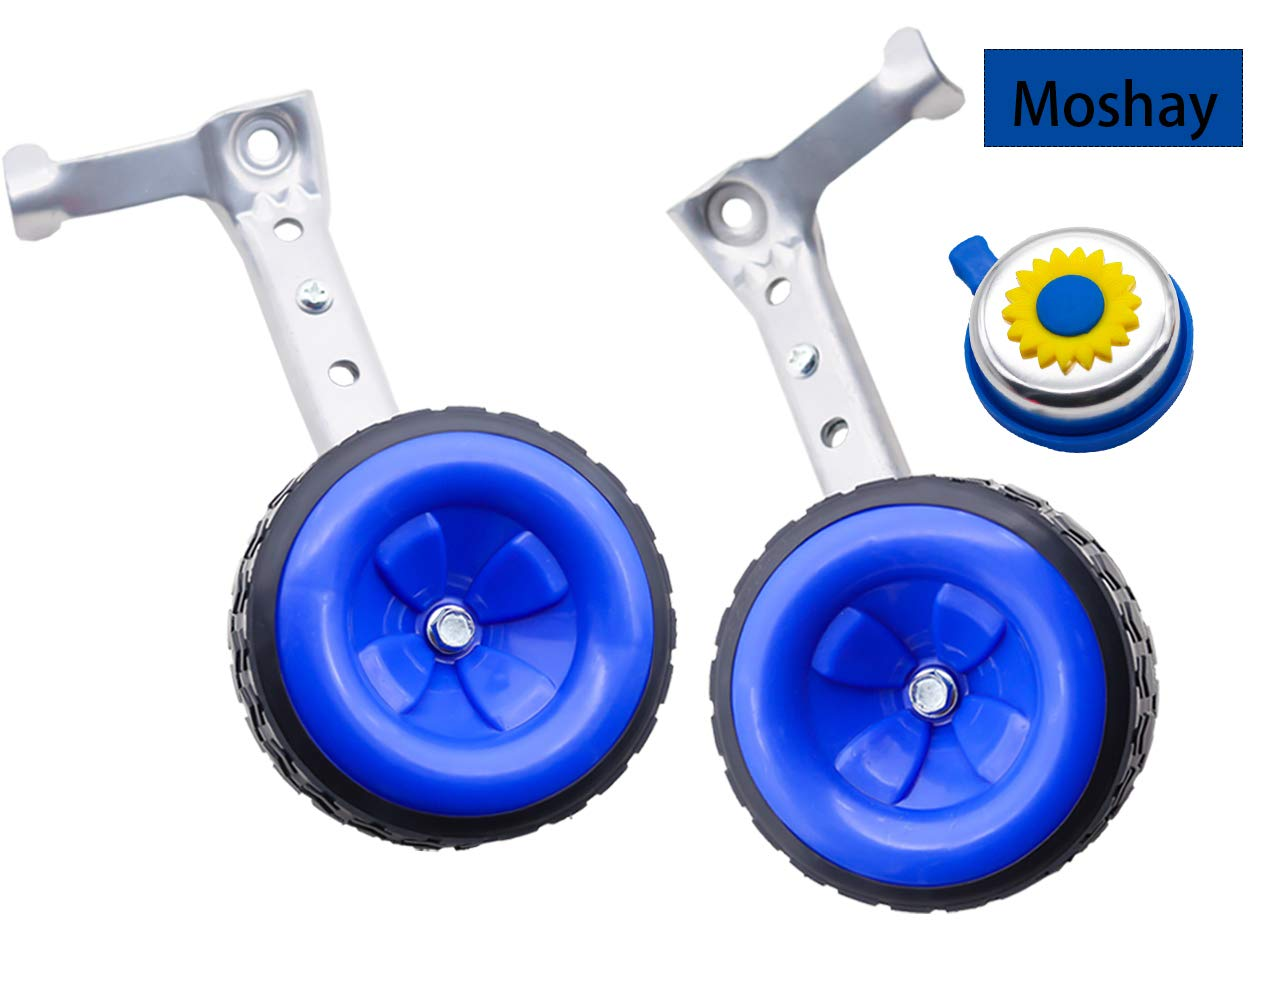 MOSHAY Bicycle Training Wheels Fits 16 18 20 22 24 inch Kids Variable Bike (D-Blue) by MOSHAY